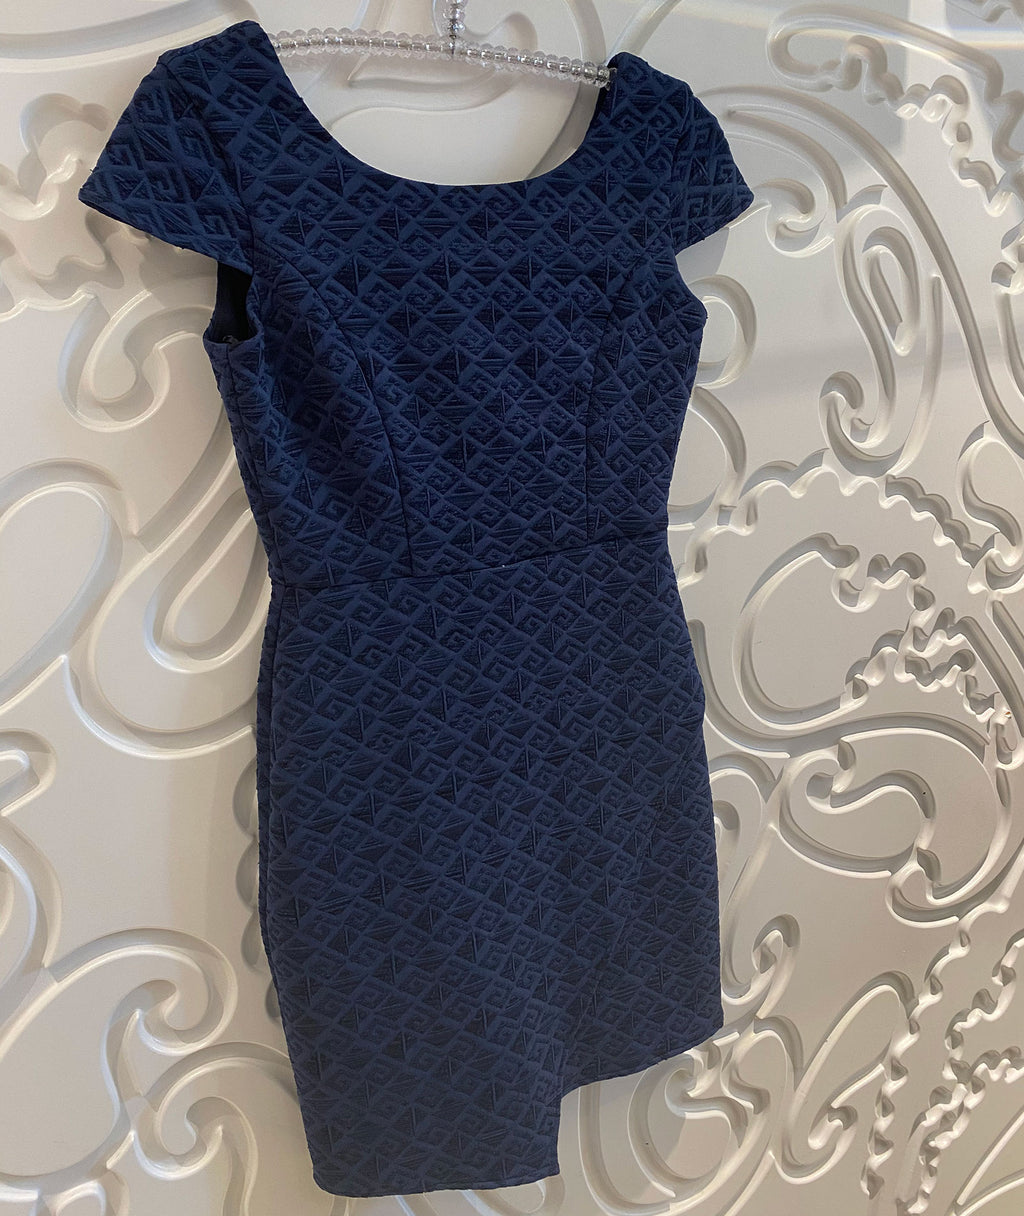 By Debra Girls Navy Cap Sleeve Envelope Dress